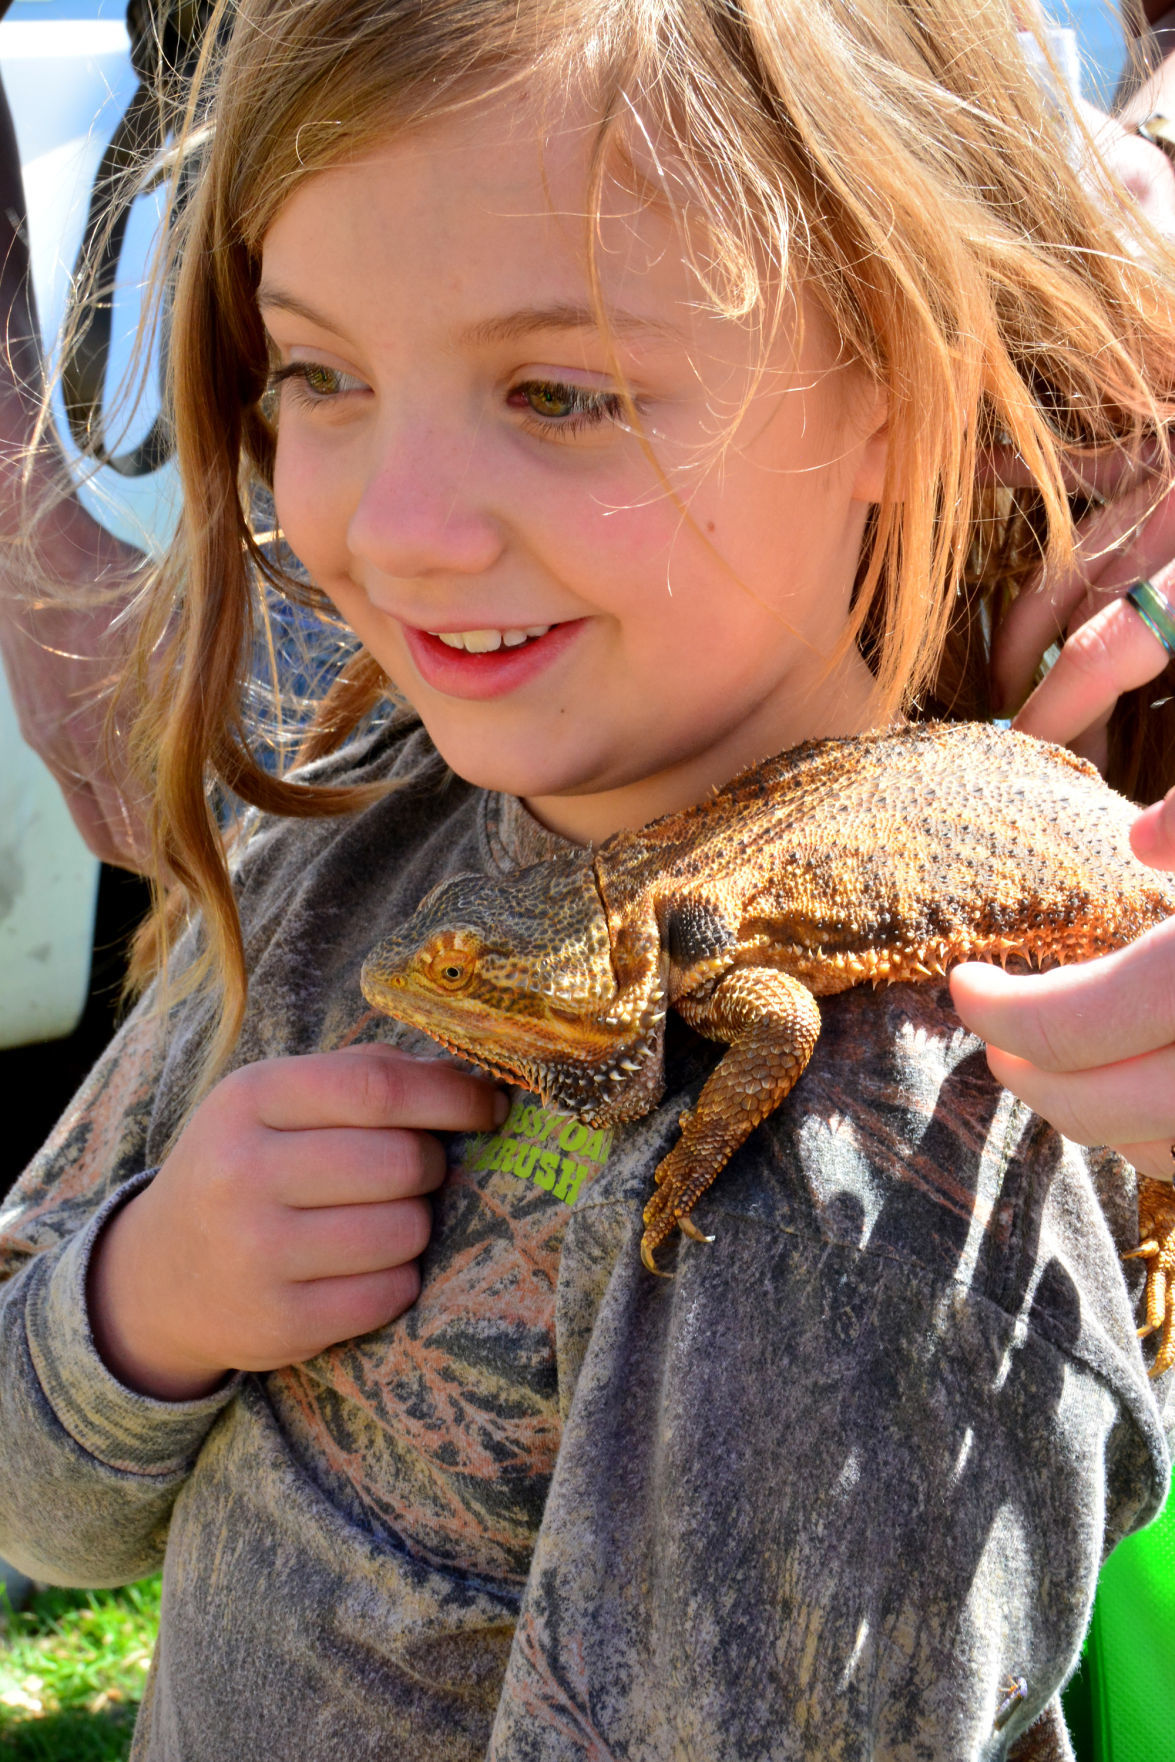 Wildlife fair introduces kids to things that go bump in the